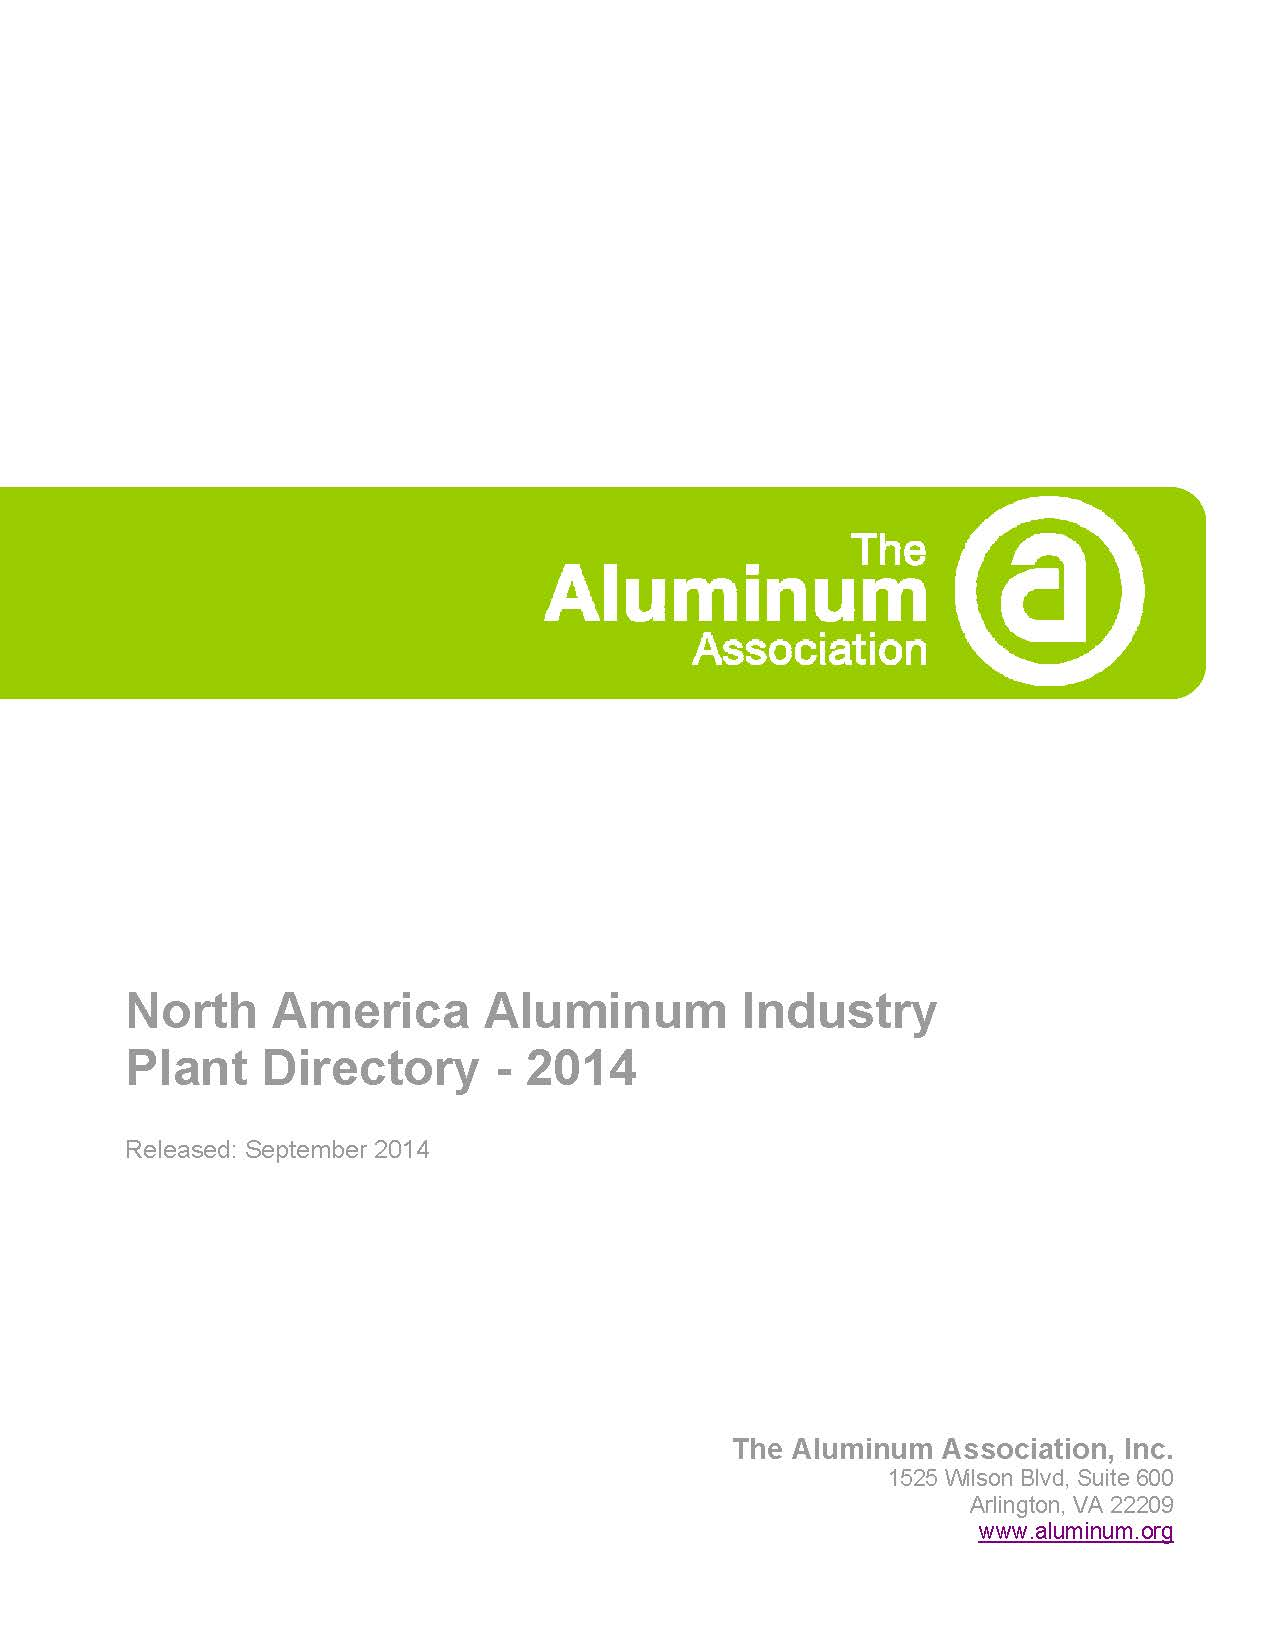 North America Aluminum Industry Plant Directory - 2014